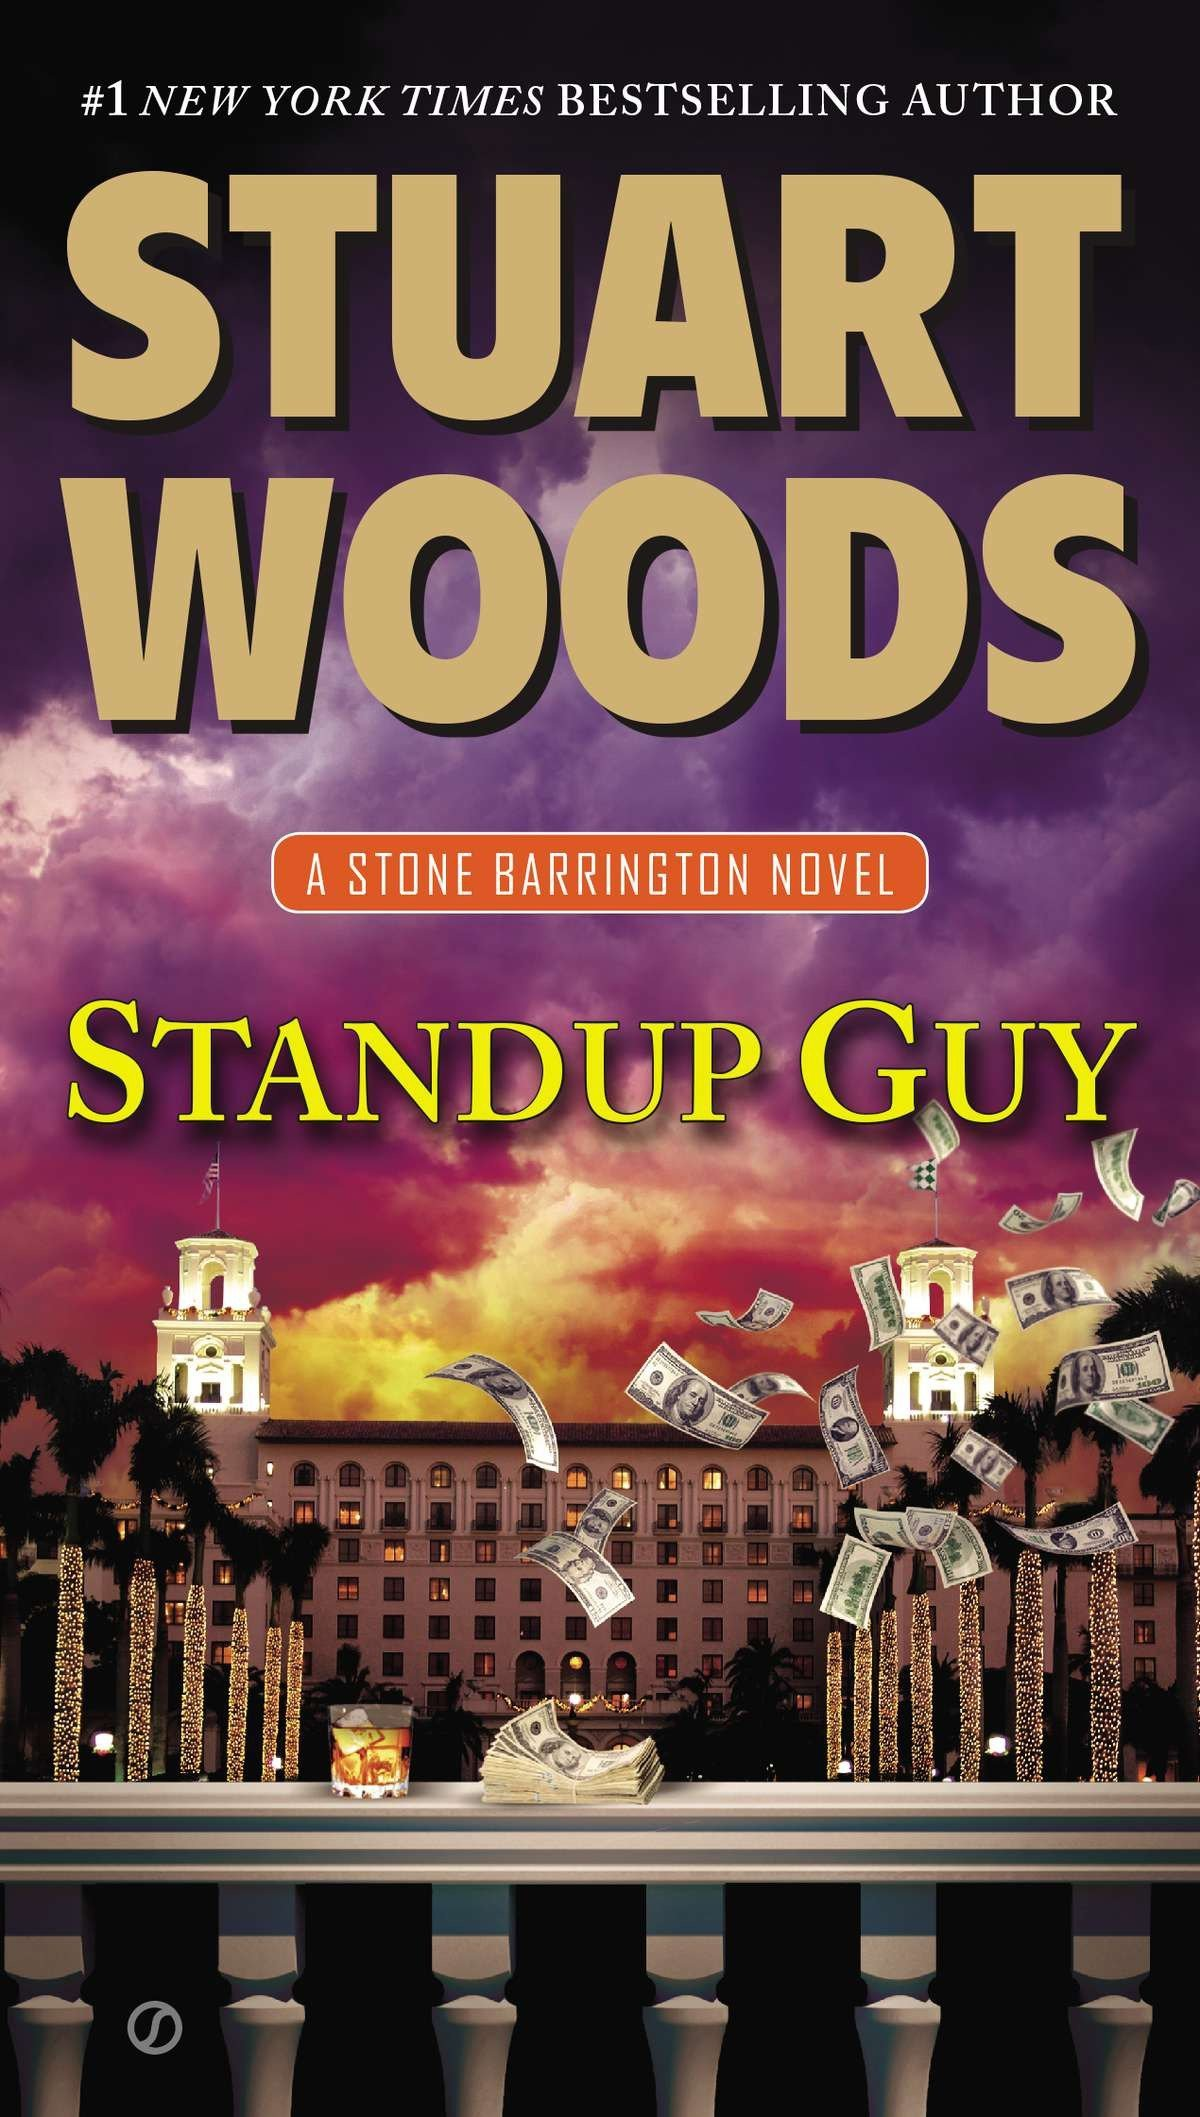 Standup Guy Stone Barrington Novel product image